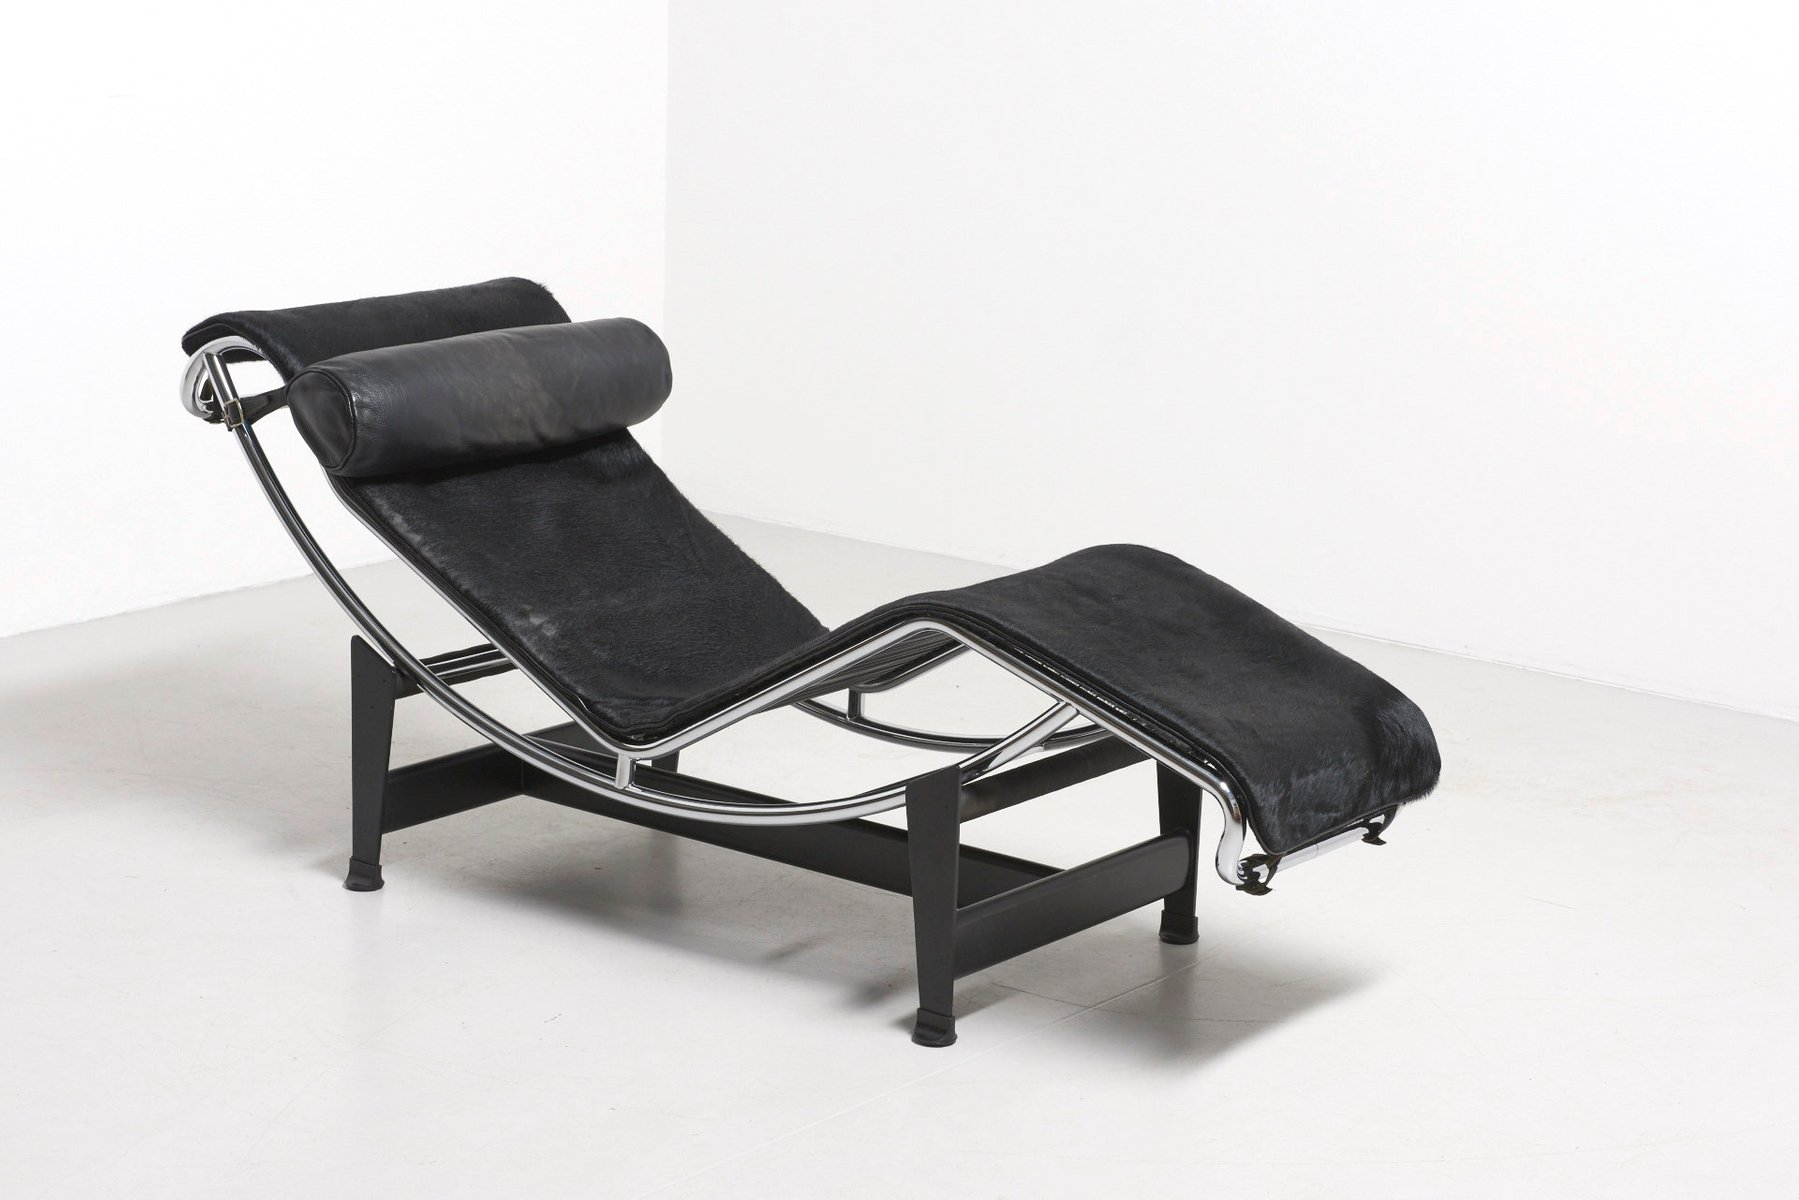 Vintage lc4 chaise lounge by le corbusier for cassina for for Chaise le corbusier